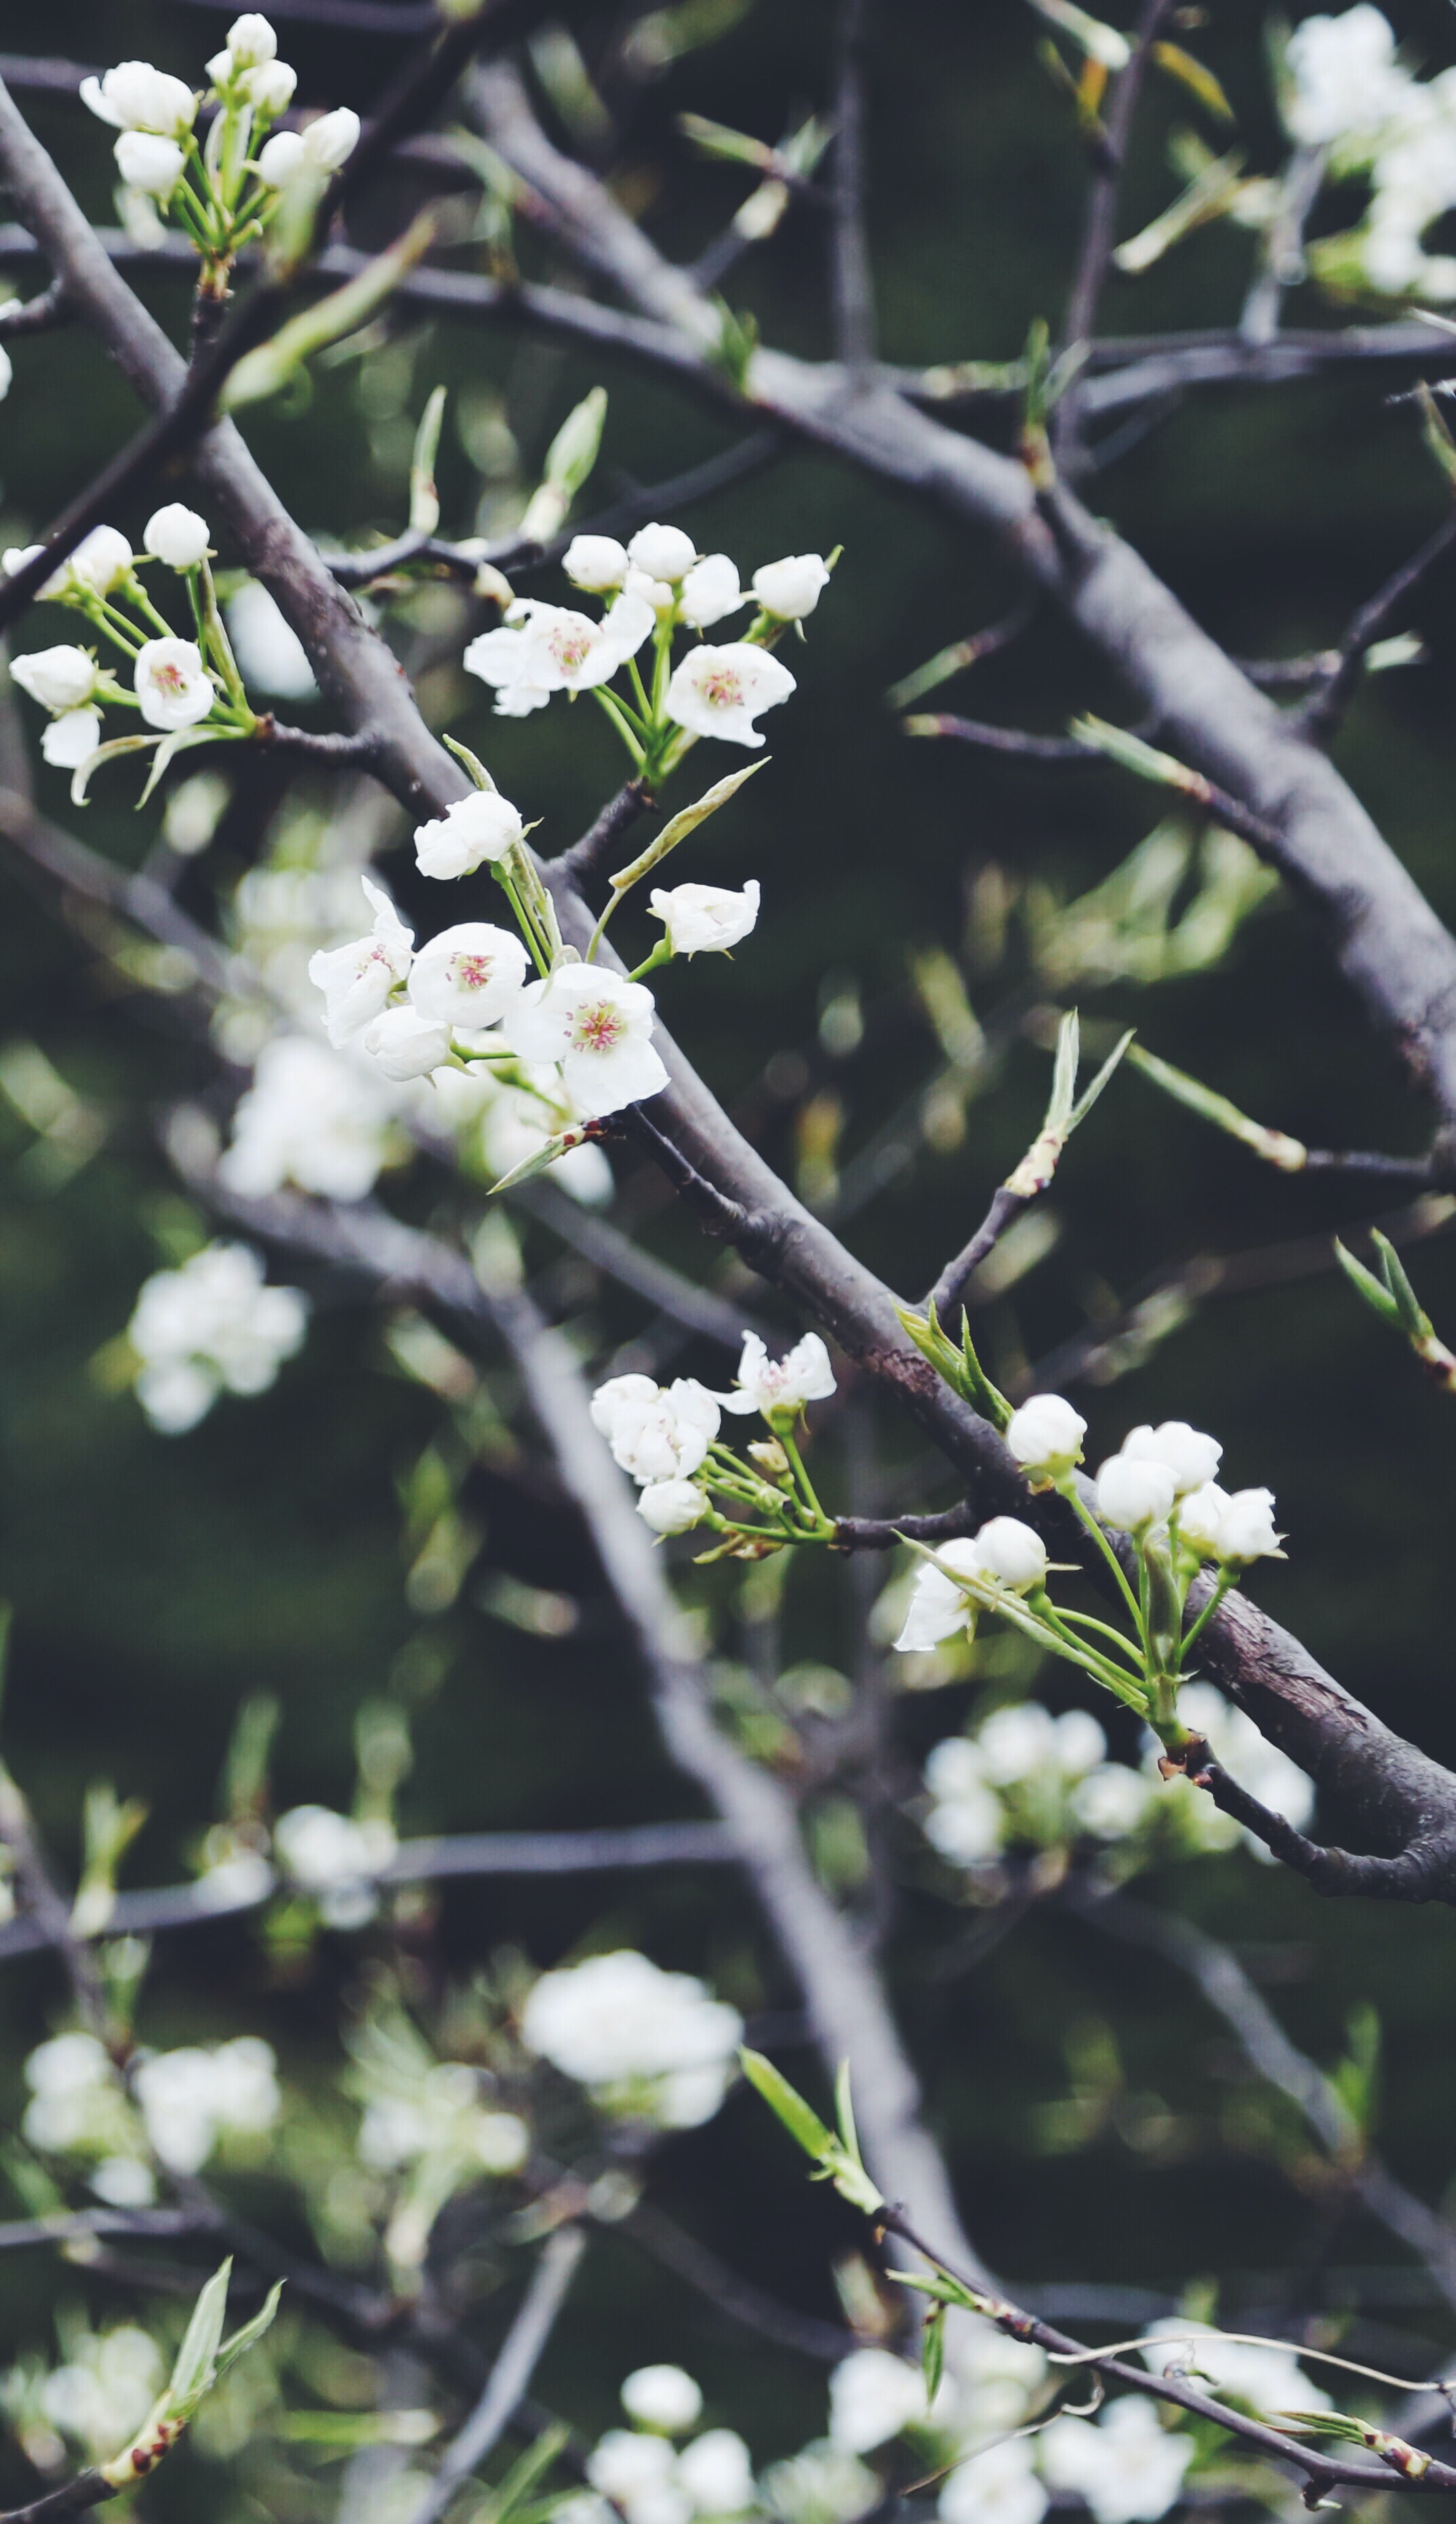 Branches with white blossom flowers in bloom and stems in Spring